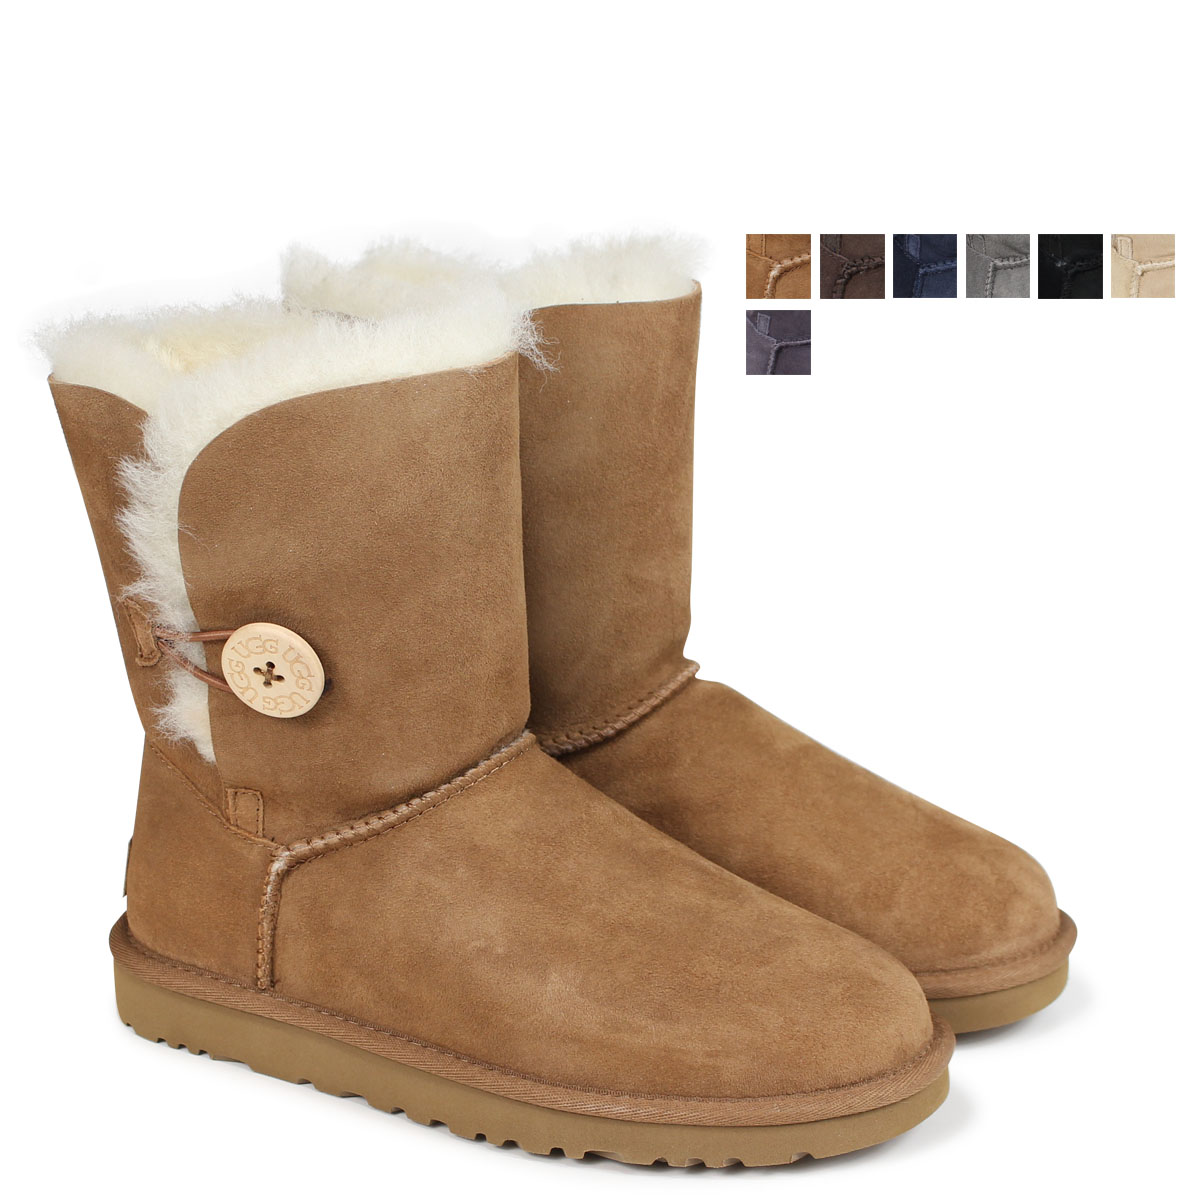 33a69ab8c4d アグ UGG Lady's WOMENS BAILEY BUTTON II mouton boots Bailey button 2 5803  1016226 [178]